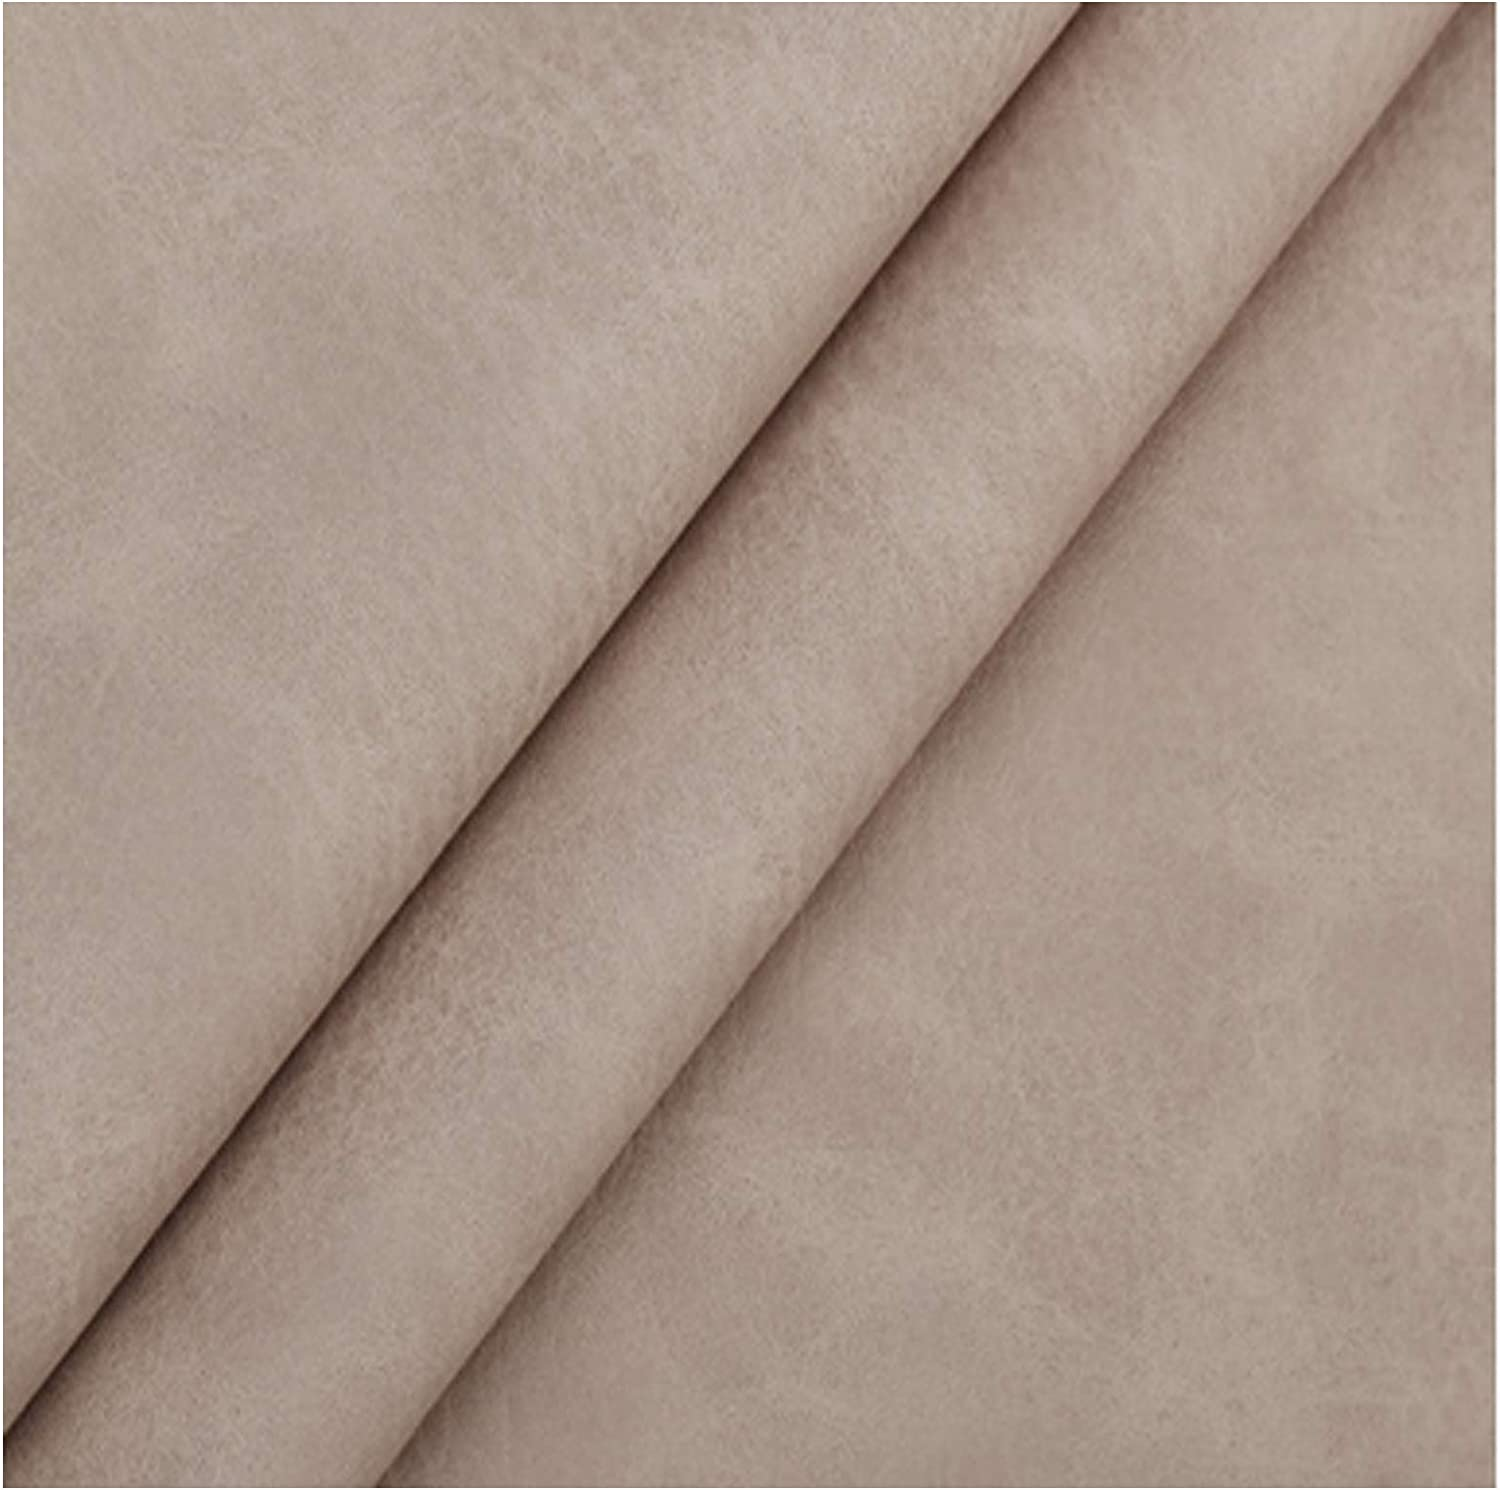 Ranking TOP7 ZHIHEHE Faux Leather Fabric Sale Nashville-Davidson Mall f Synthetic Leatherette